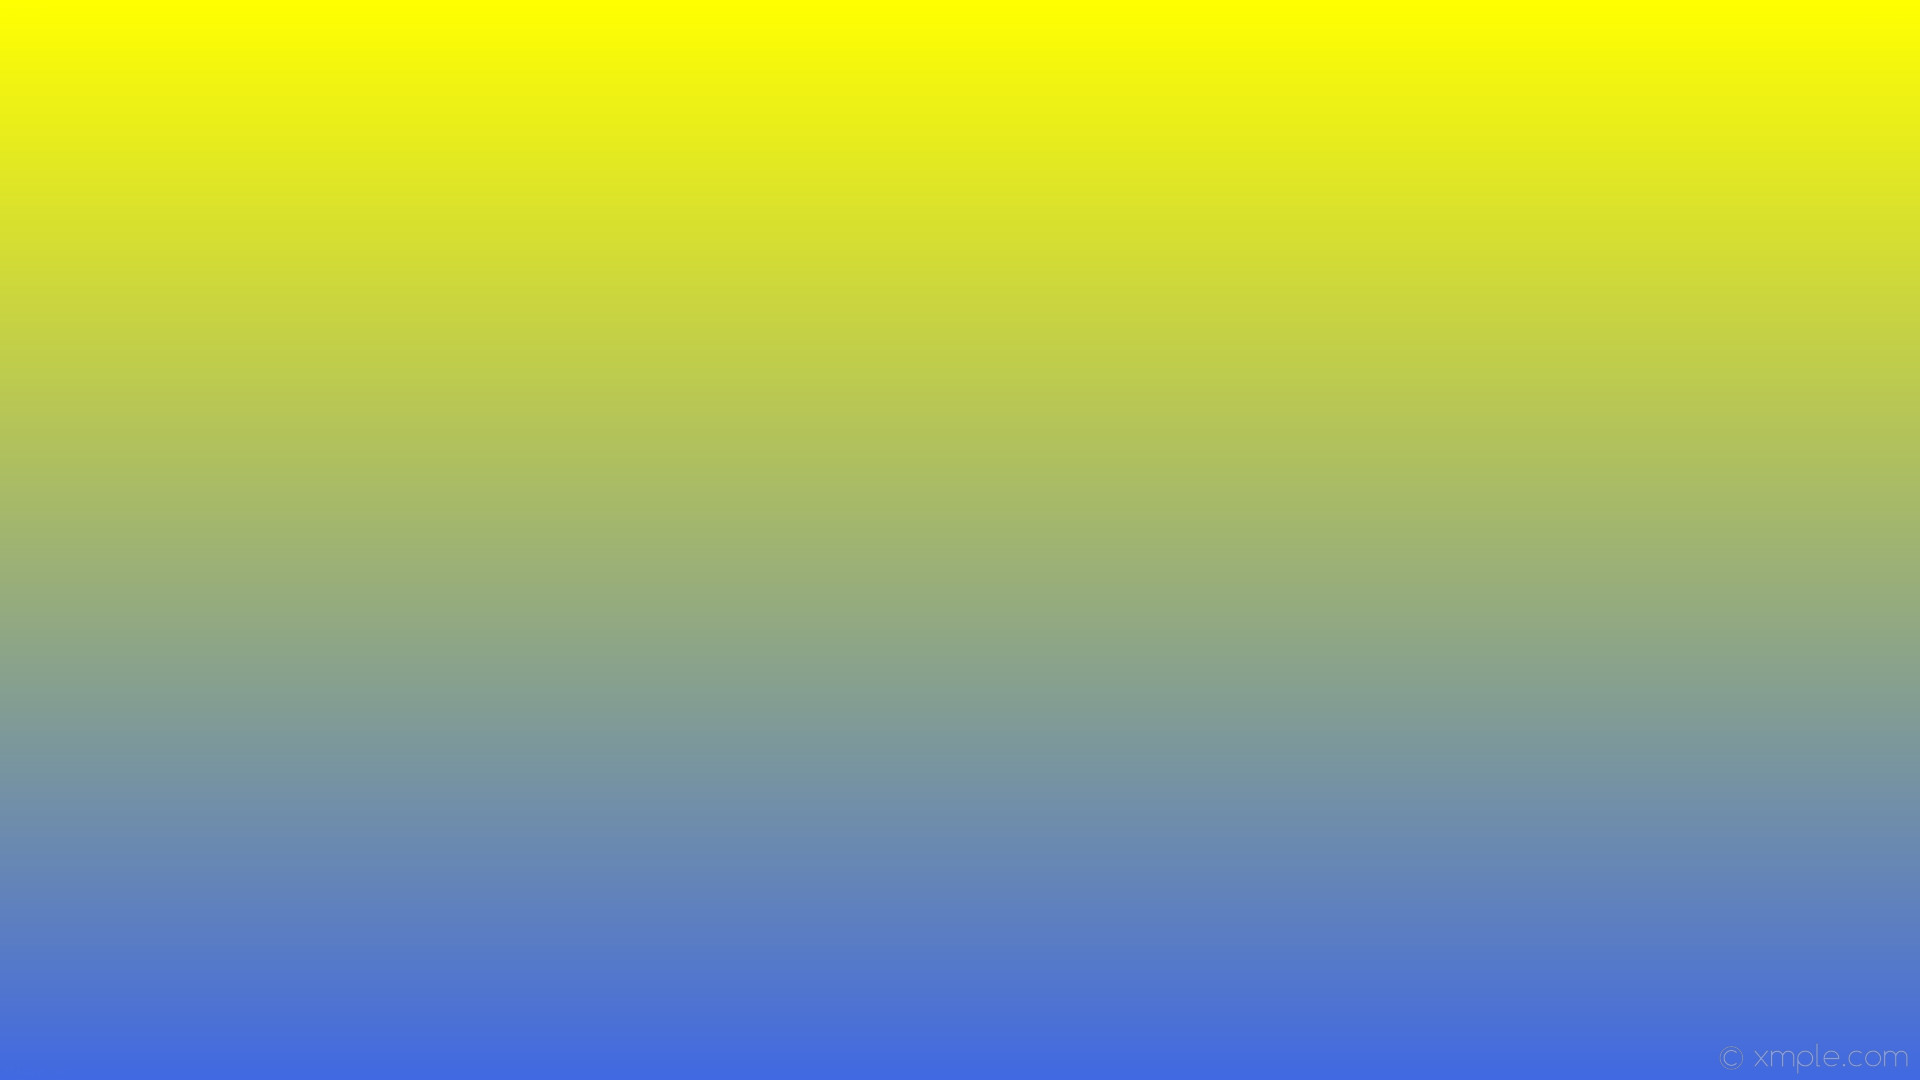 1920x1080 wallpaper yellow blue gradient linear royal blue #ffff00 #4169e1 90°